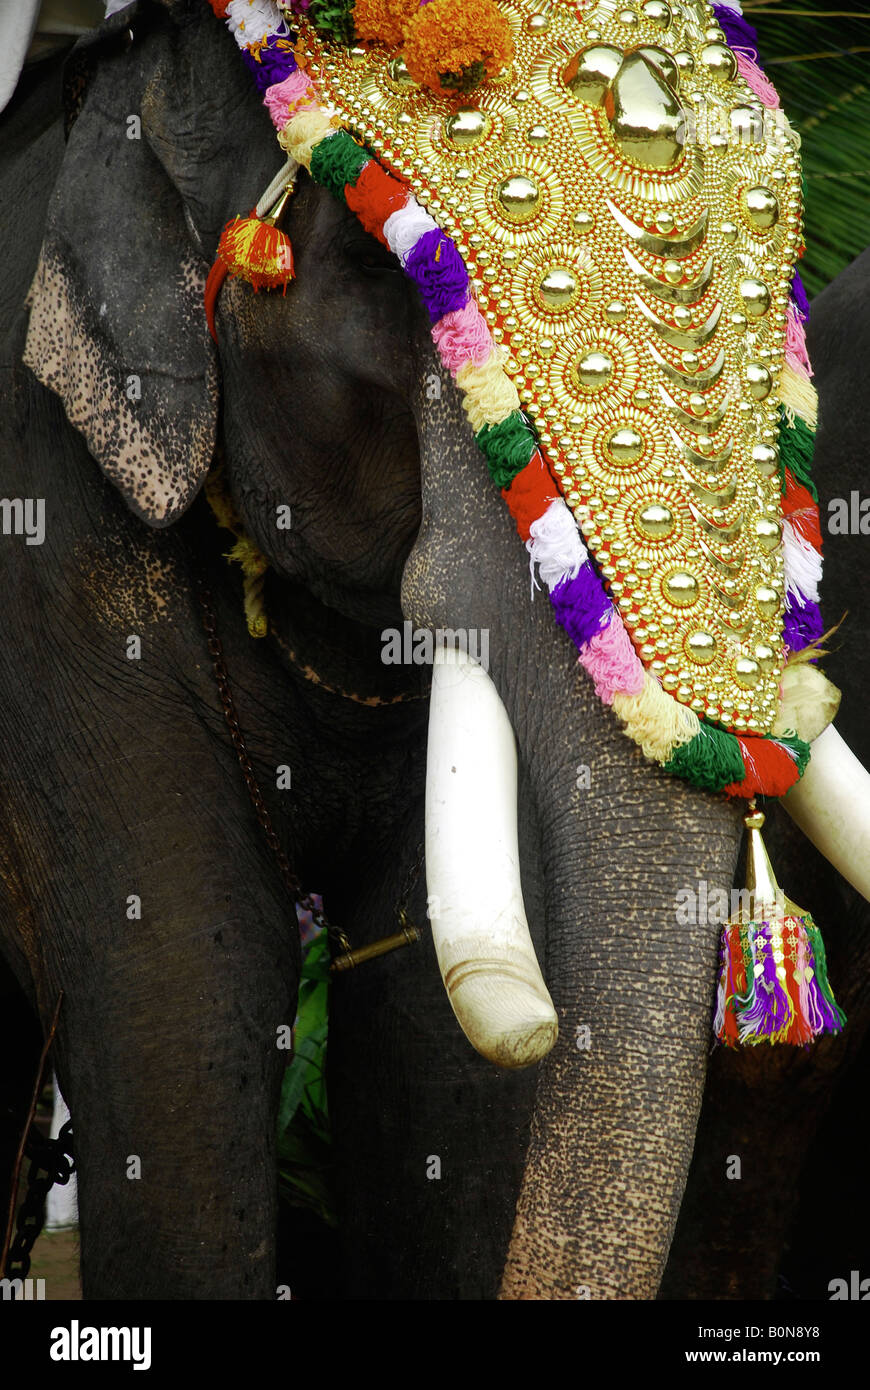 A Decorated Elephant During The Temple Festival Kerala India Stock